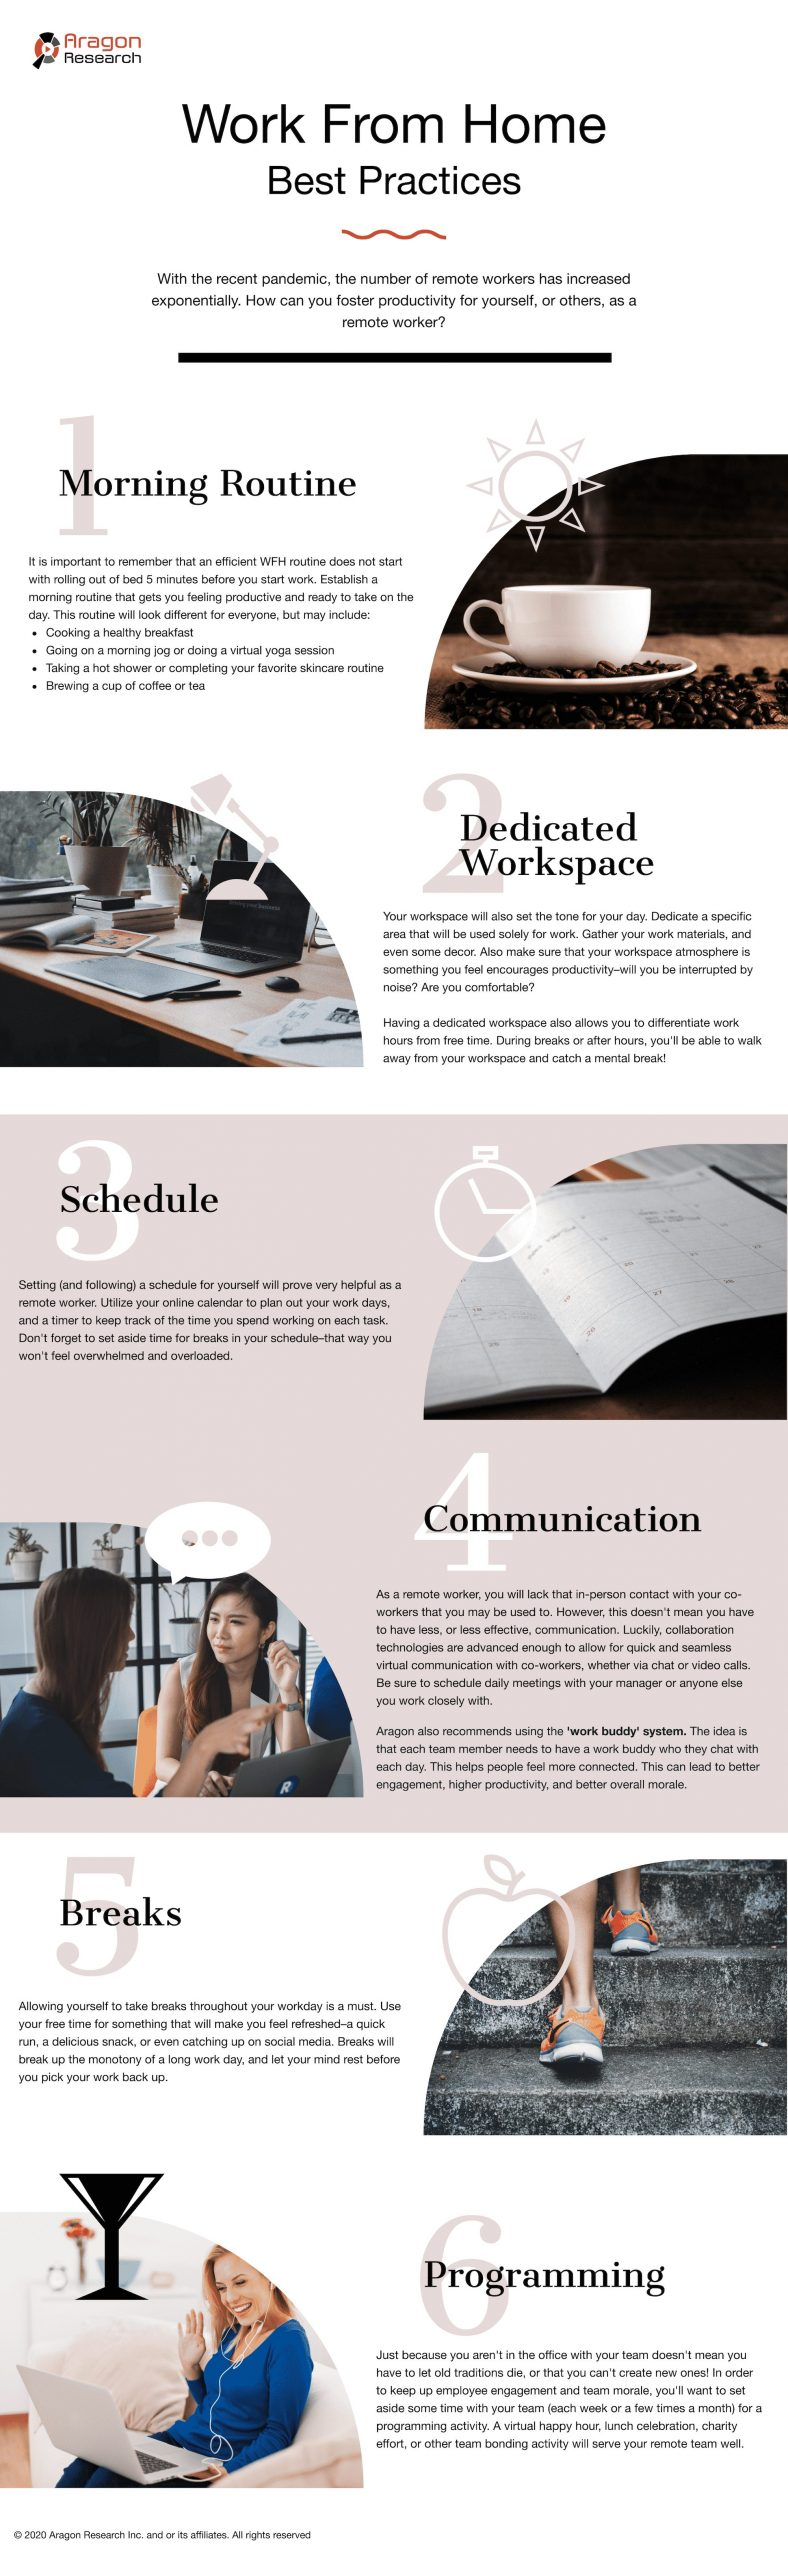 an infographic about working from home best practices